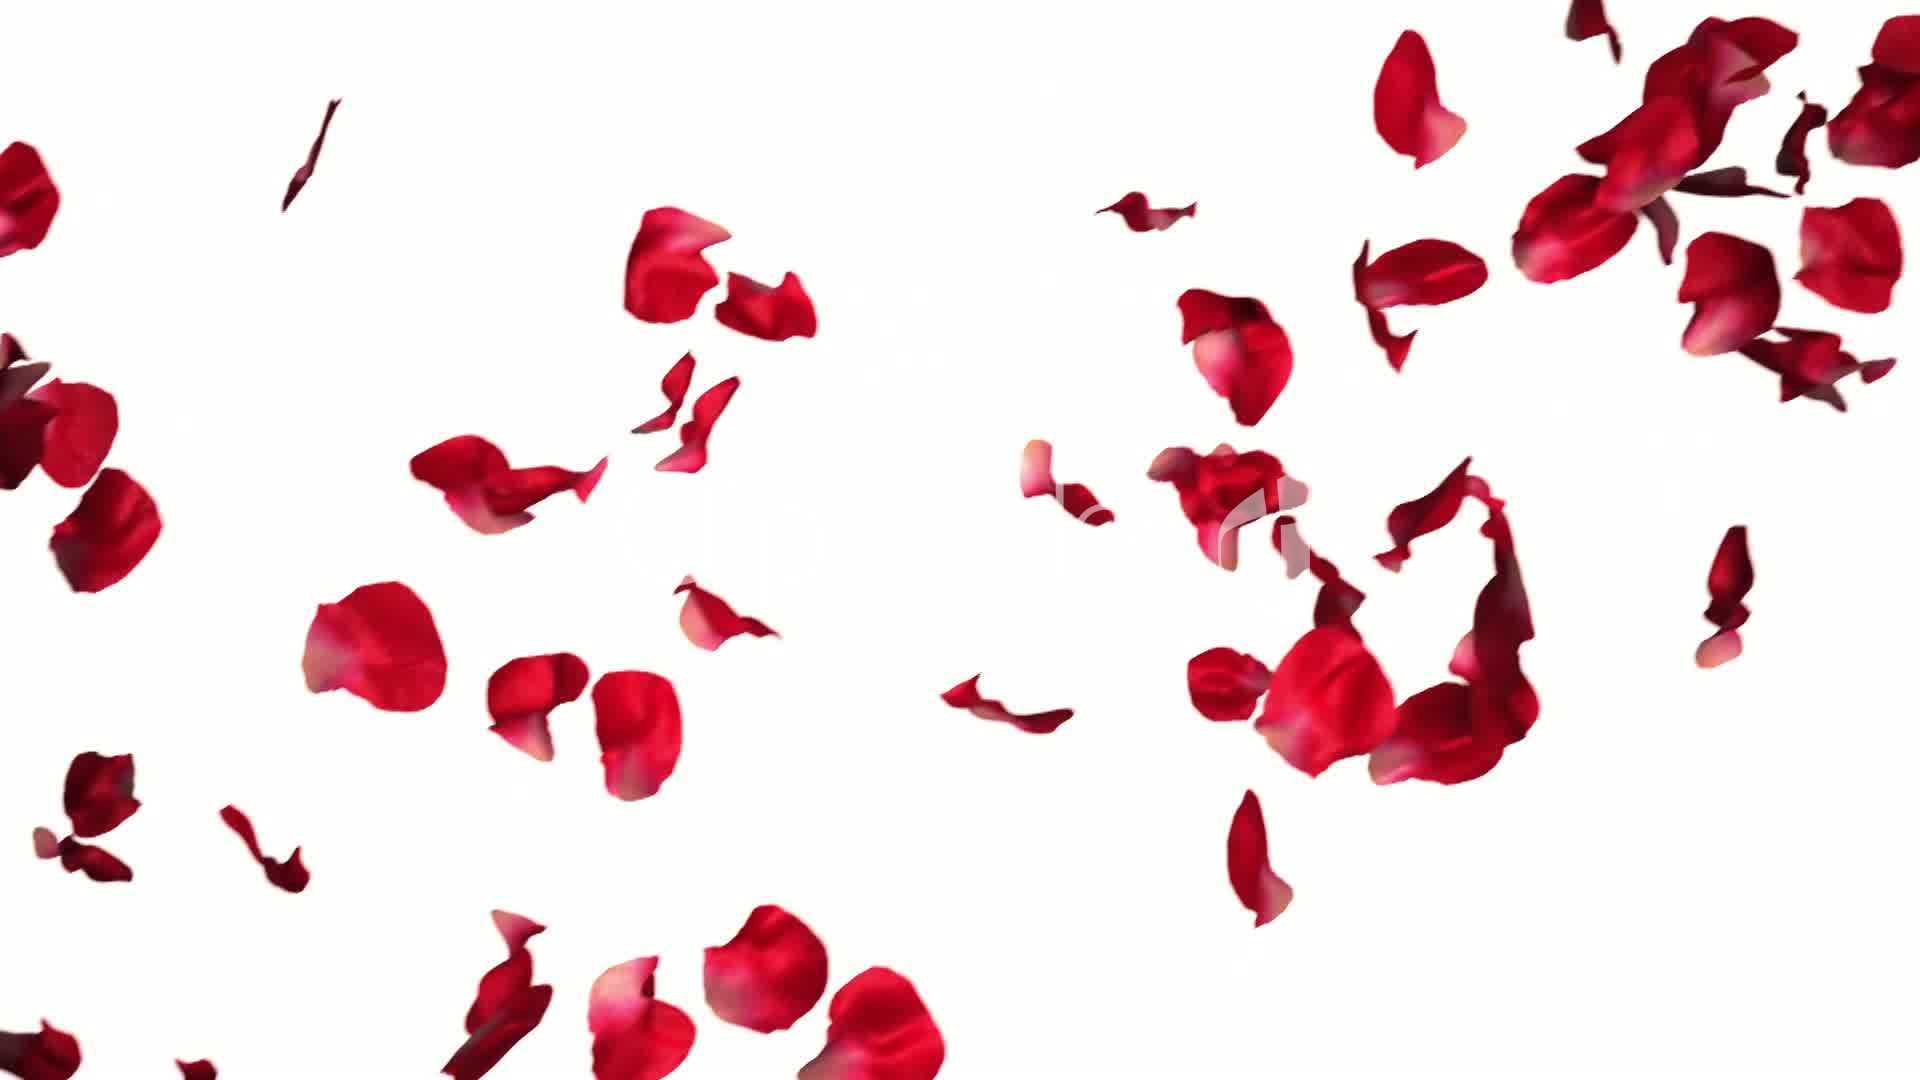 rose petal background 9 | Background Check All